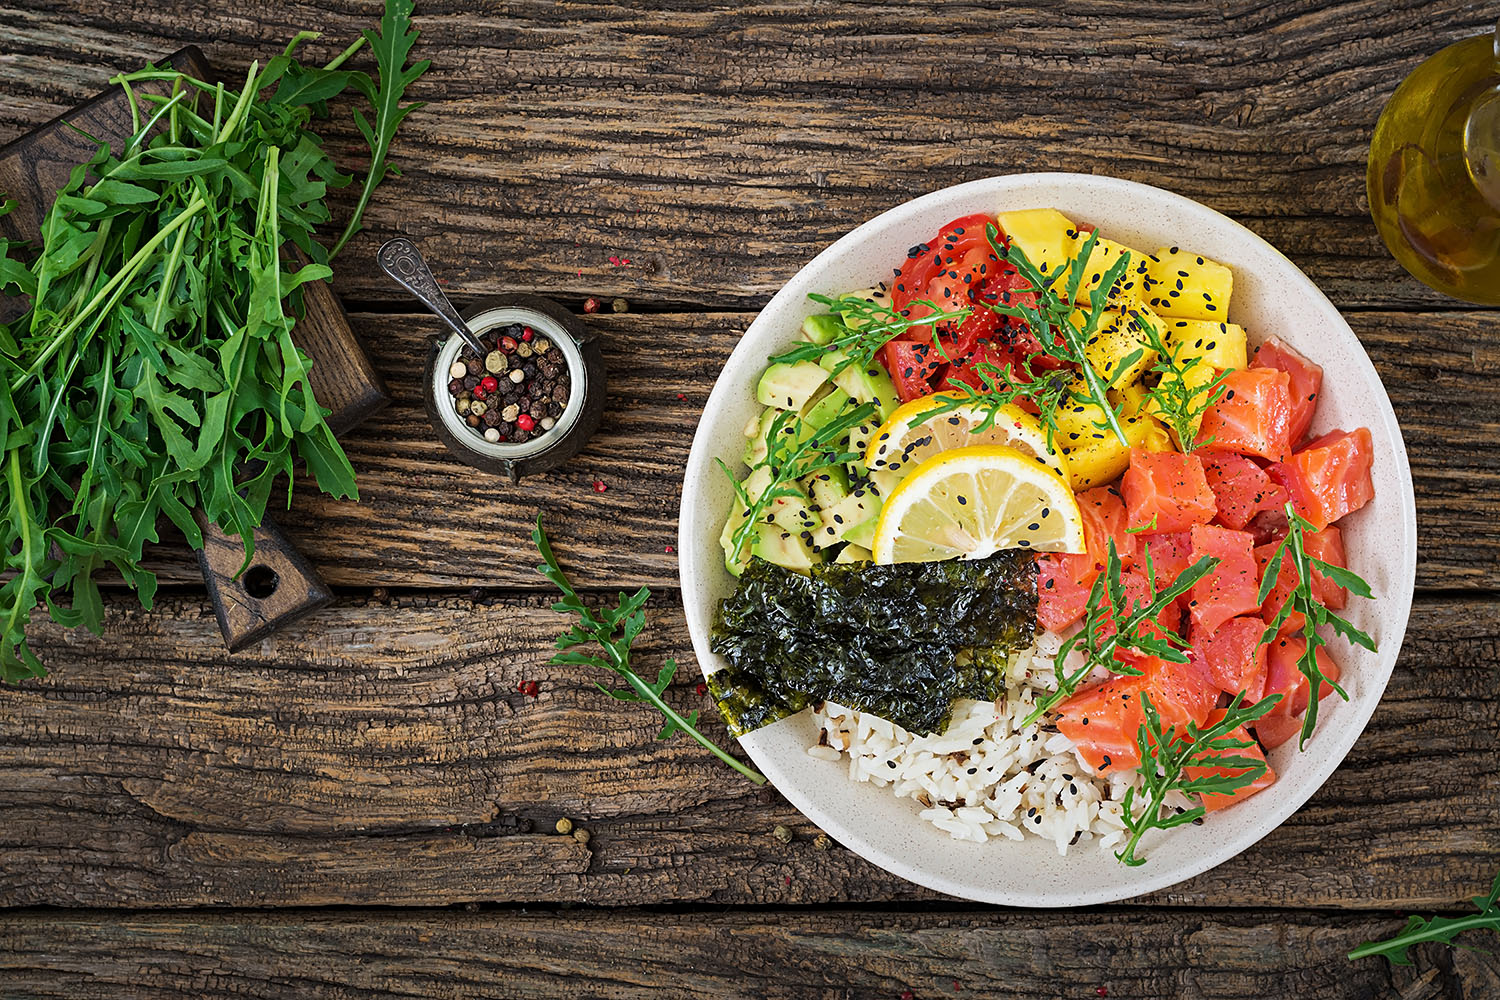 FreshPoint-Produce-Culinary-Trends-for-2019-pacific-rim-poke